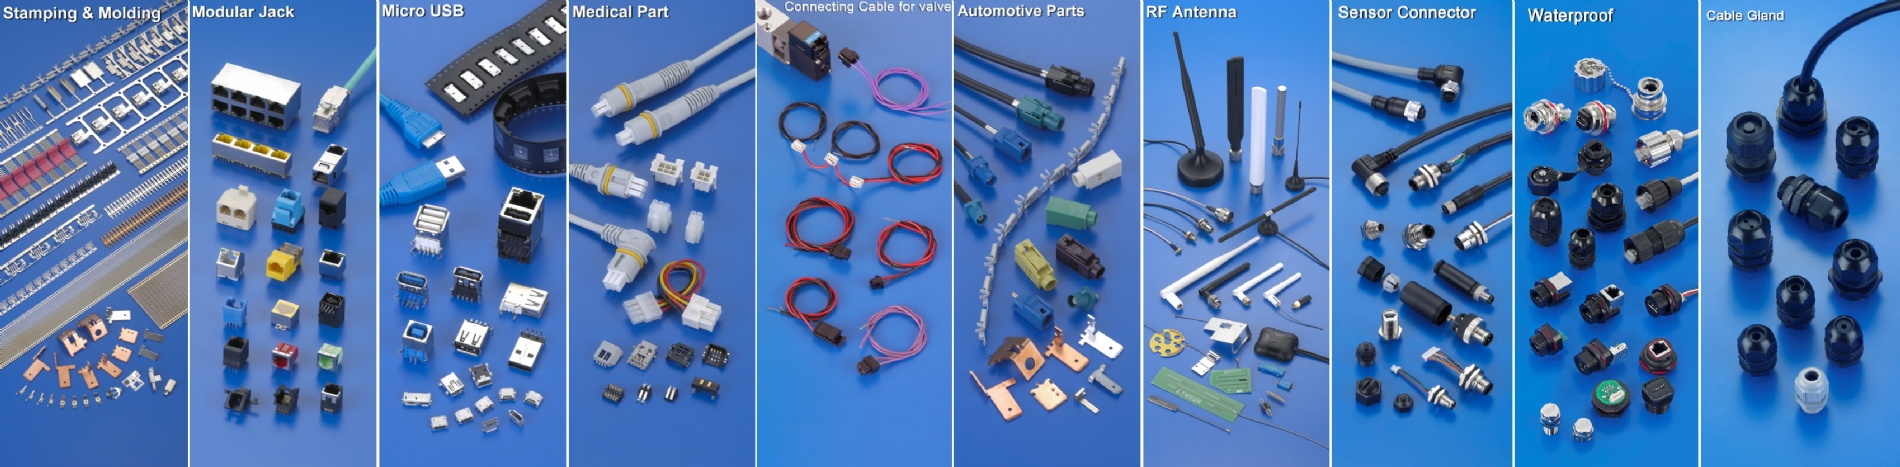 PROFESSIONAL MANUFACTURER OF ELECTRONIC COMPONENTS